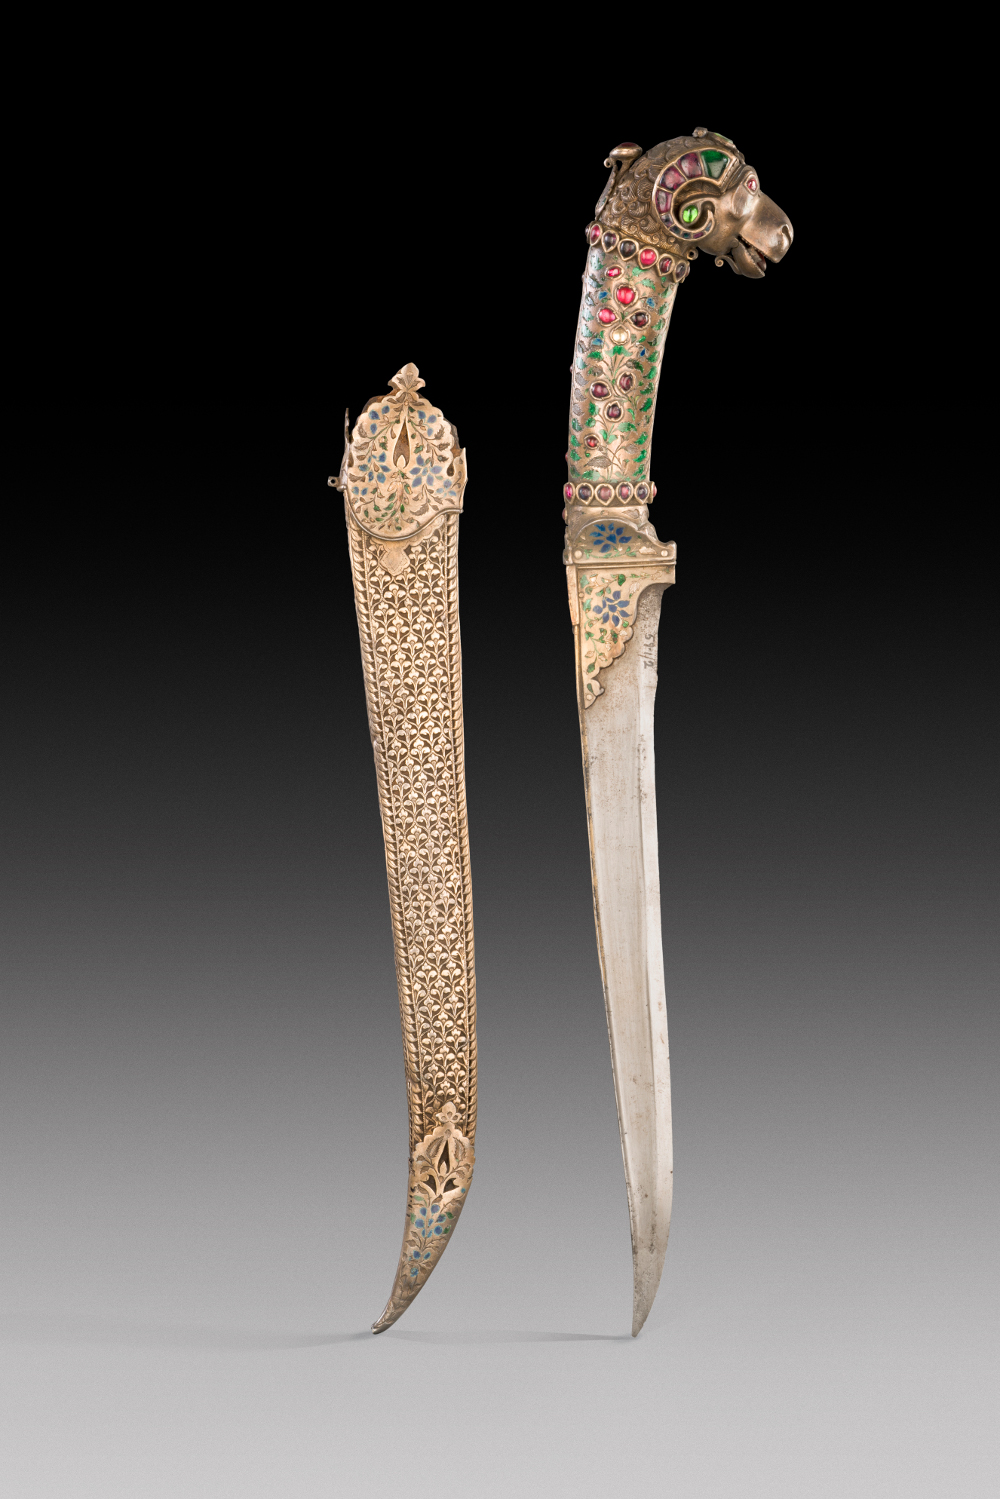 Enameled dagger - Steel, ivory, wood, gilded, inlaid with rubies and emeraldsAD 1720–1770Rajasthan, IndiaNational Museum, New Delhi The subject of the painting on this shield is Maharana Sangram Singh II – ruler of the Rajput court of Mewar from 1690 to 1734. He is shown practicing his archery, hunting tigers, and having amorous encounters in the forest, while the women of the court expectantly await his return. Messengers would carry a royal shield to allow them a safe and speedy passage, and in Rajput courts they had long been used as trays for royal gifts. The elegant dagger is of a type that was comfortably worn tucked in the sash-belt and could have been used by either a man or woman.